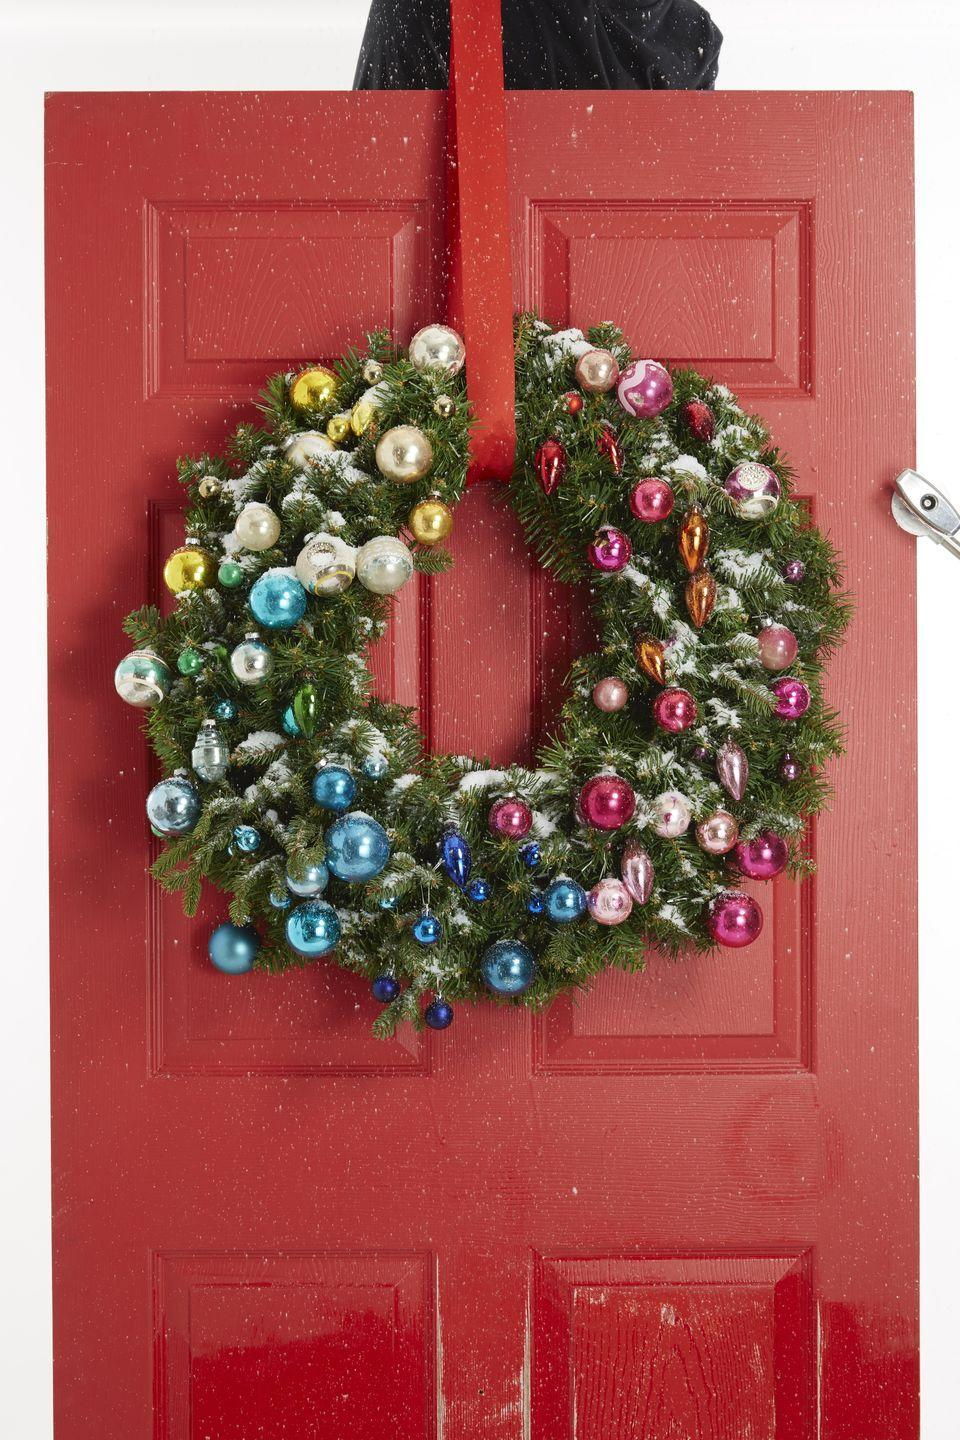 "<p>A faux wreath provides the basis for this sweet decoration. Group ornaments by color, placing warm shades (pink, red, orange, yellow, gold) on one side and cool tones (blue, purple, green, silver) on the other. </p><p><strong>RELATED:</strong> <a href=""https://www.goodhousekeeping.com/holidays/christmas-ideas/how-to/g2203/christmas-decoration-ideas/"" rel=""nofollow noopener"" target=""_blank"" data-ylk=""slk:80+ Christmas Decoration Ideas to Turn Your Home Into a Winter Wonderland"" class=""link rapid-noclick-resp"">80+ Christmas Decoration Ideas to Turn Your Home Into a Winter Wonderland</a></p>"